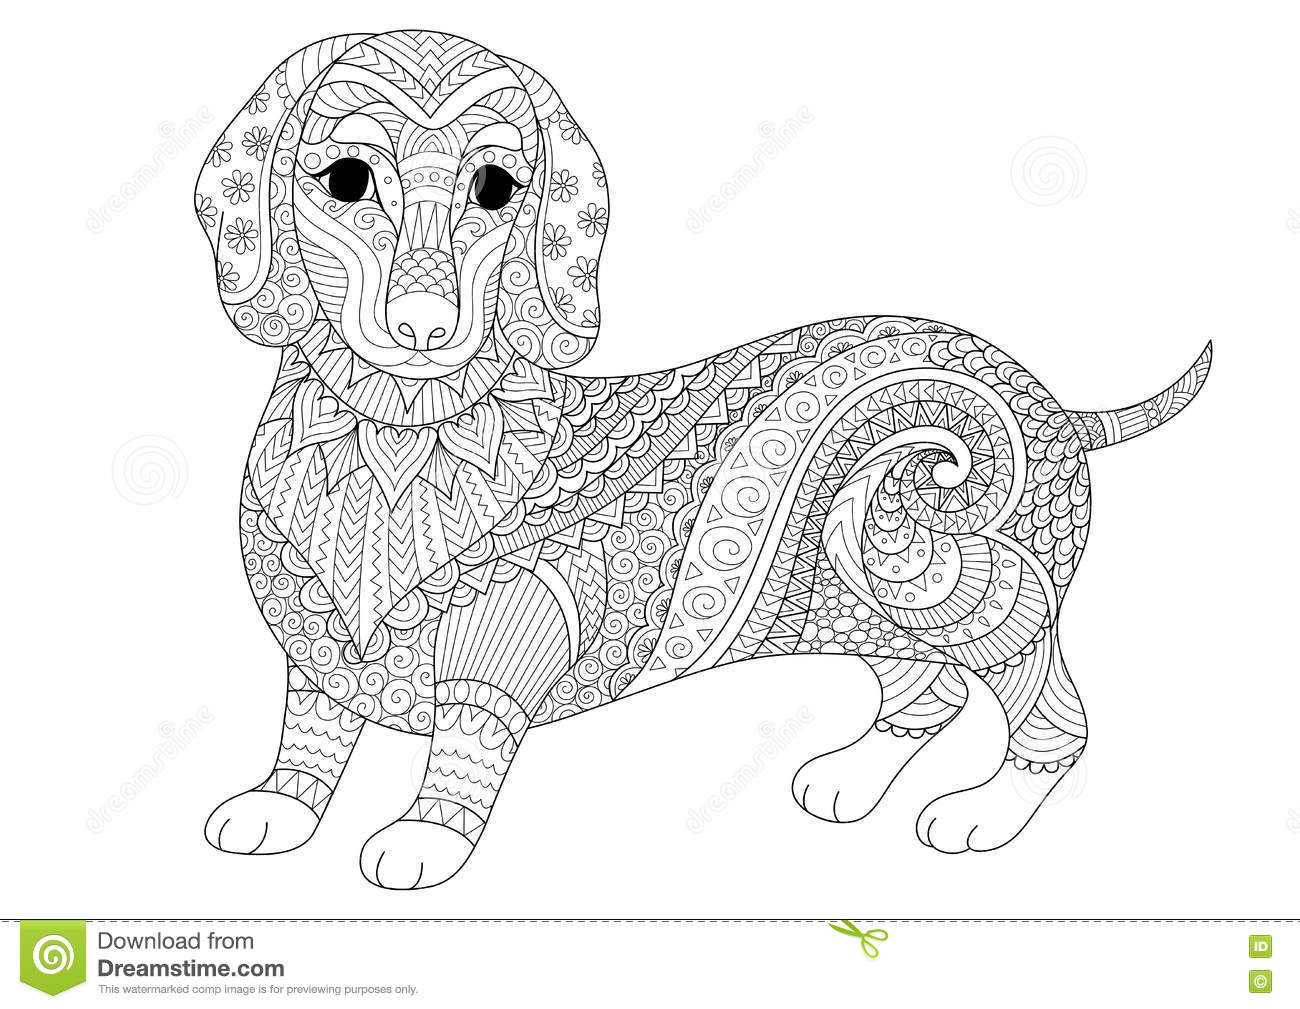 Zendoodle Design Of Dachshund Puppy For Adult Coloring